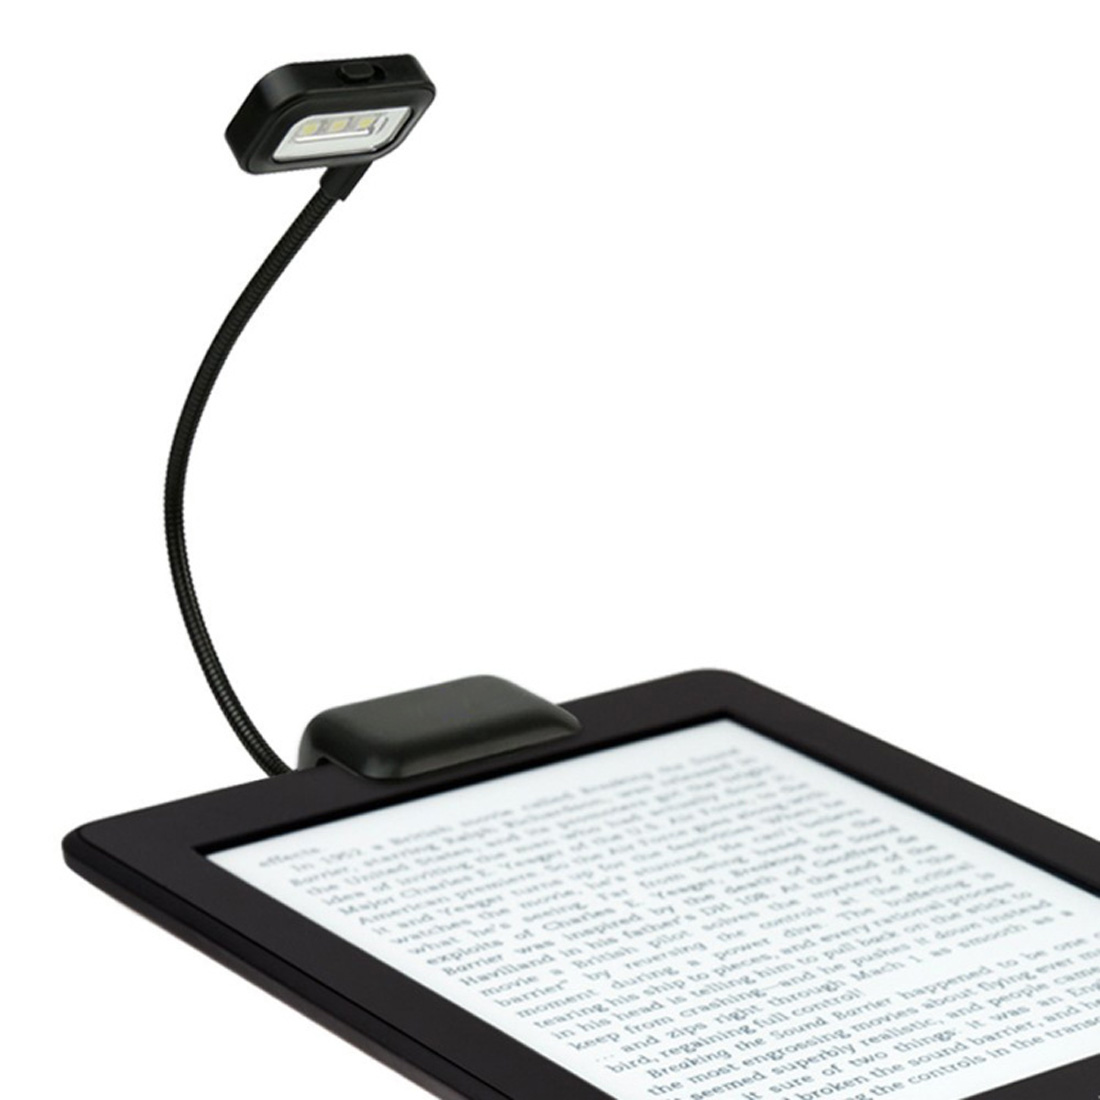 0.5W Portable Lamp Flexible Mini Clip On Reading Light Reading Lamp For Amazon Kindle/eBook Readers/ PDAs(China)